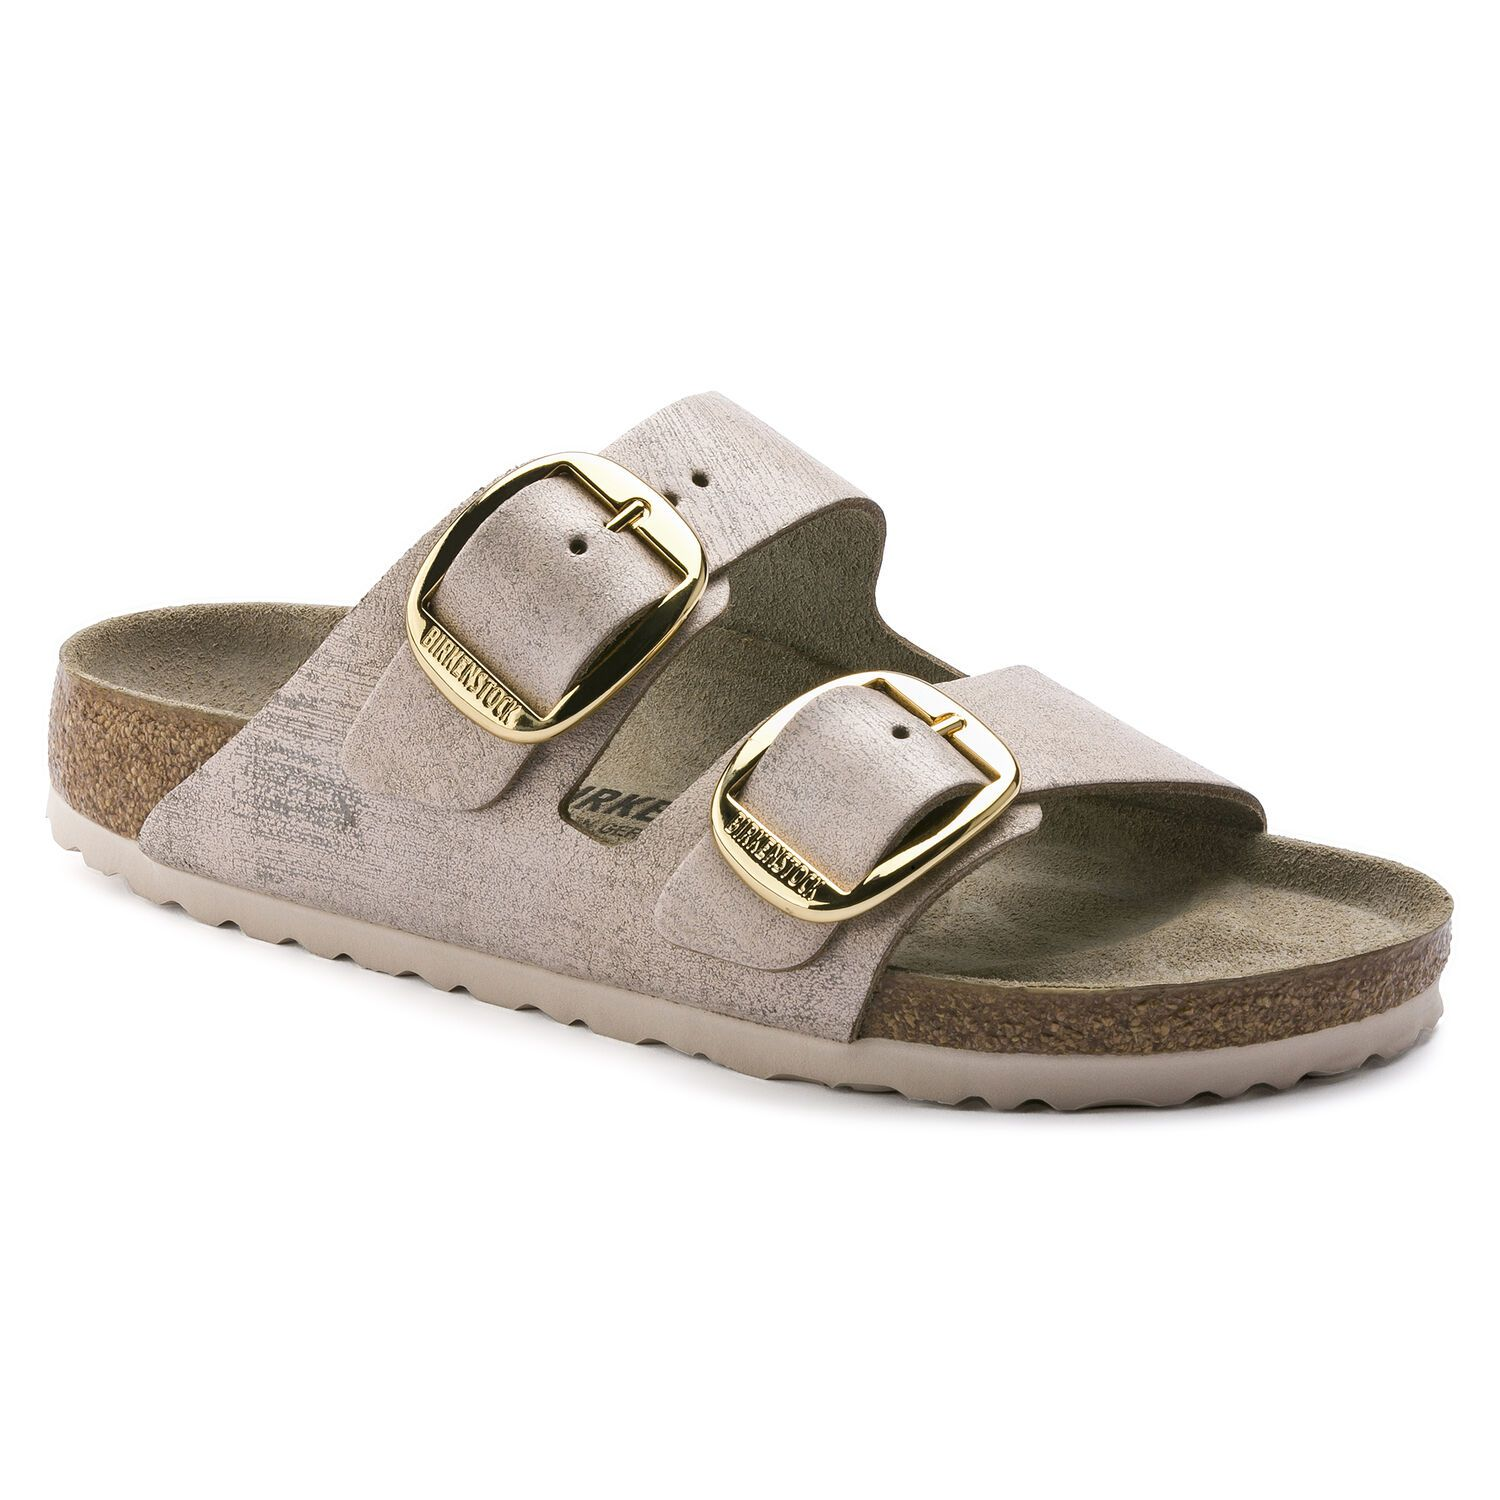 Birkenstock Arizona Bb Vl Washedmetallic Rose Gold Narrow